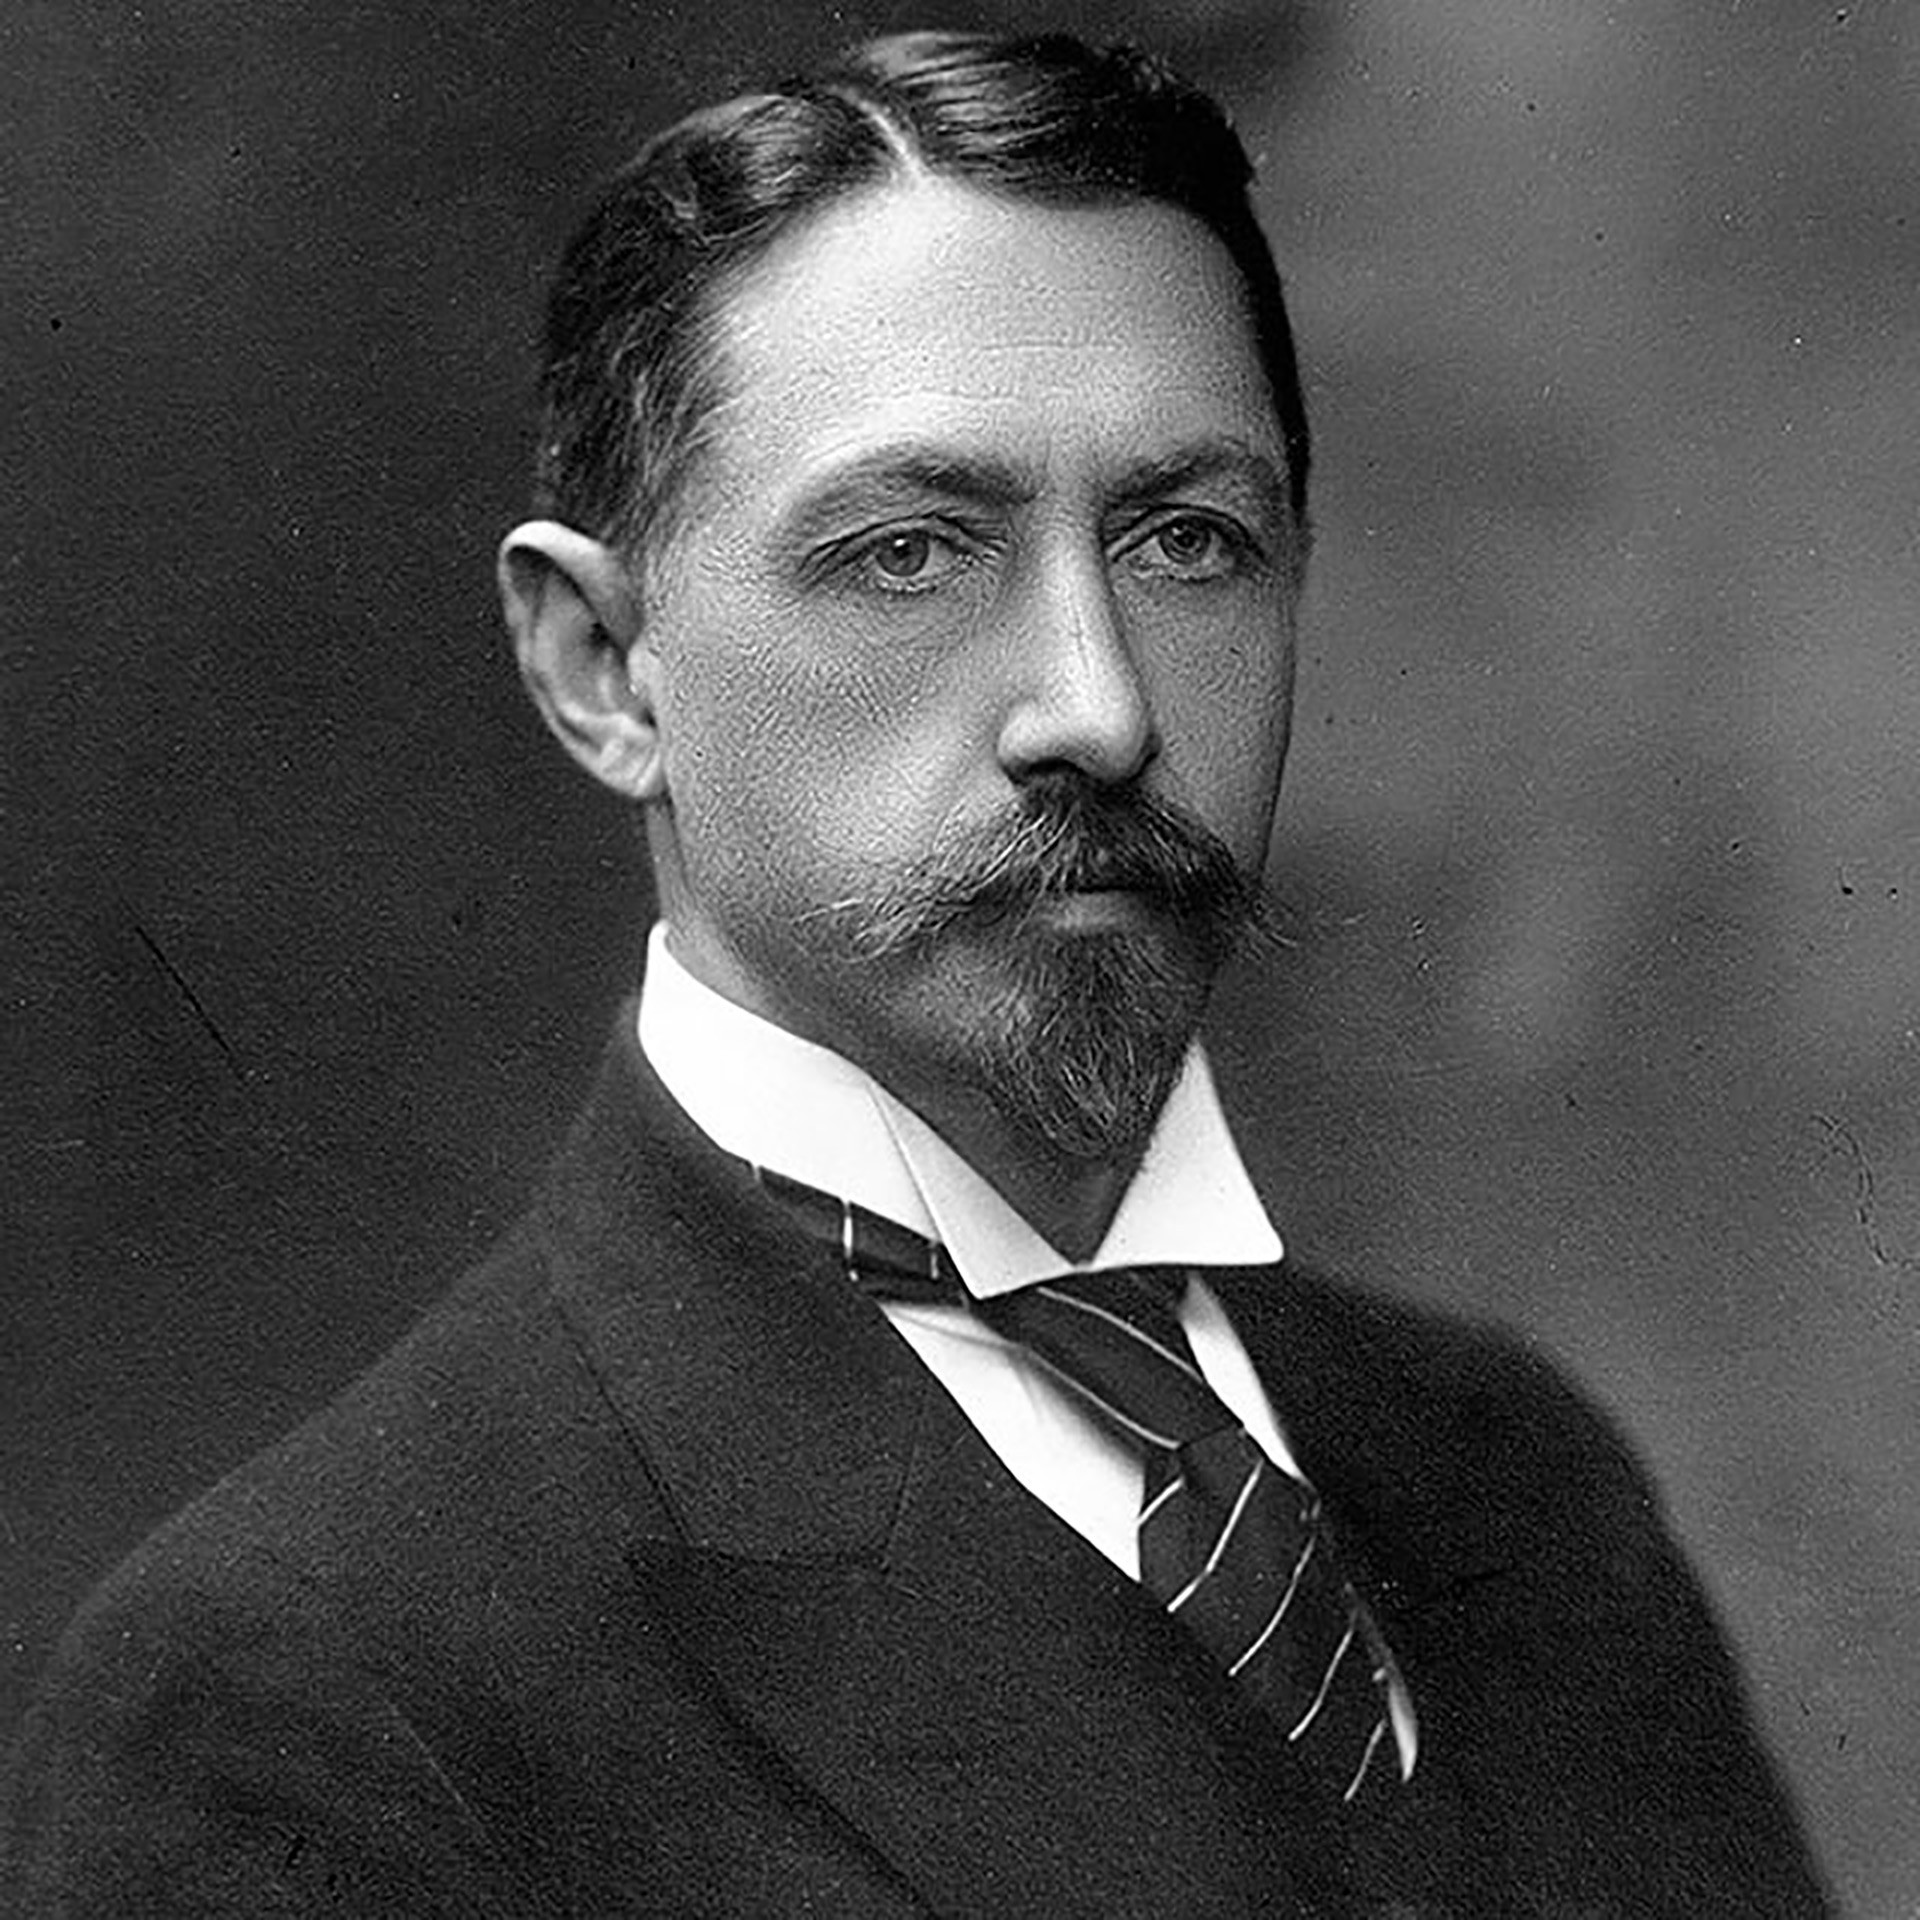 Ivan Bunin, a Nobel prize winner from Russia, who hated the Bolshevism and was longing for old Russia until the end of his life.